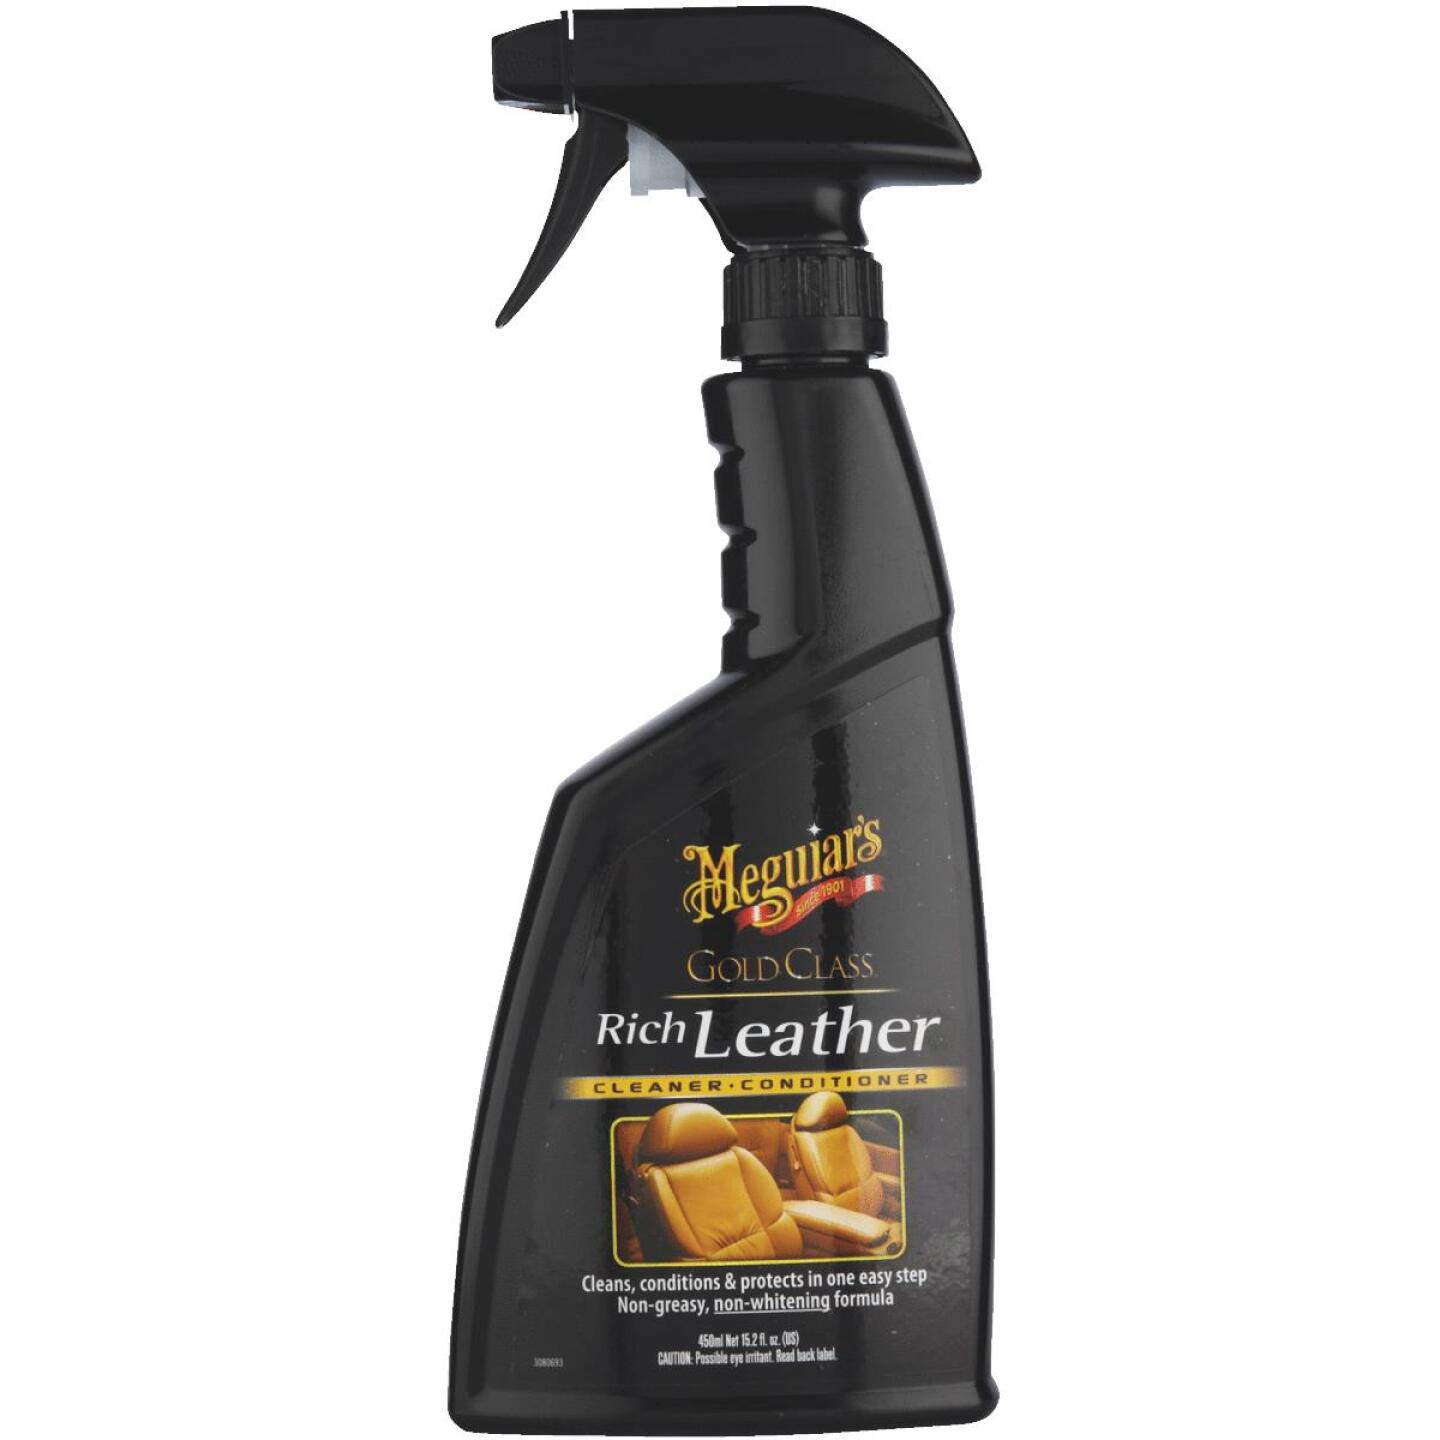 Meguiars Gold Class 16 oz Trigger Spray Leather Cleaner Image 2